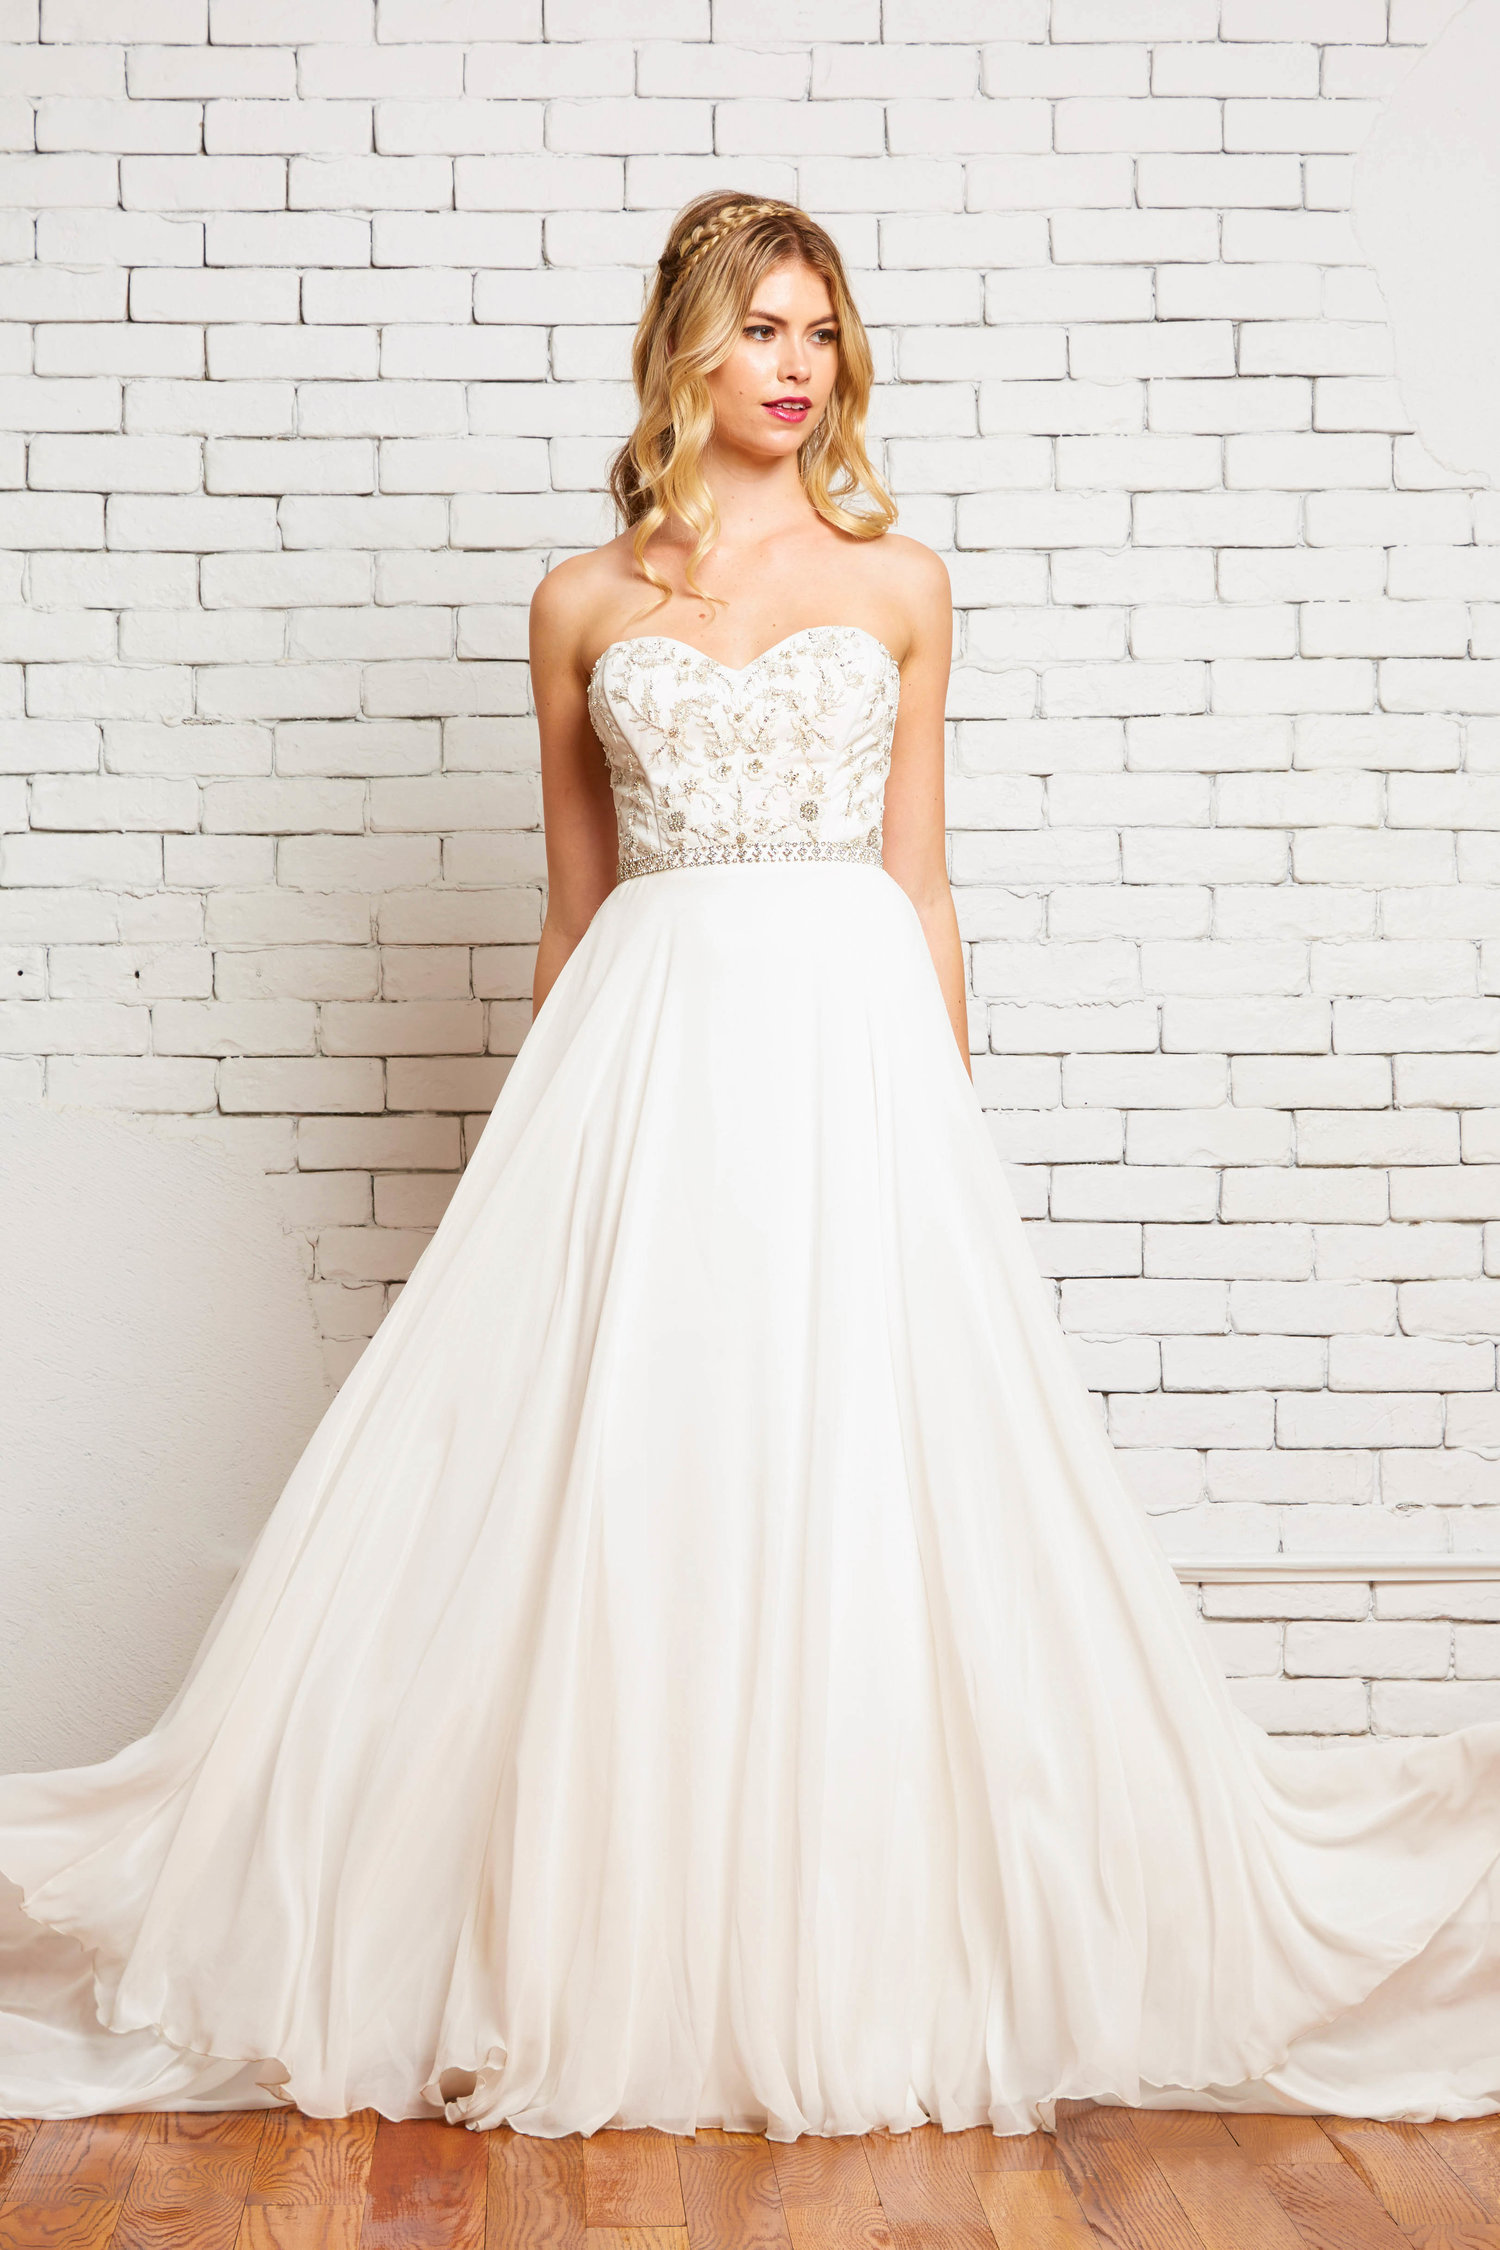 2A.+Jaqueline+Front+2-Rebecca+Schoneveld-2-124_classic_strapless_embelished_gown_with_flowy_simple_a_line_skirt-ivory-and-beau-bridal-boutique-savannah-wedding-gowns-savannah-wedding-dresses.jpg